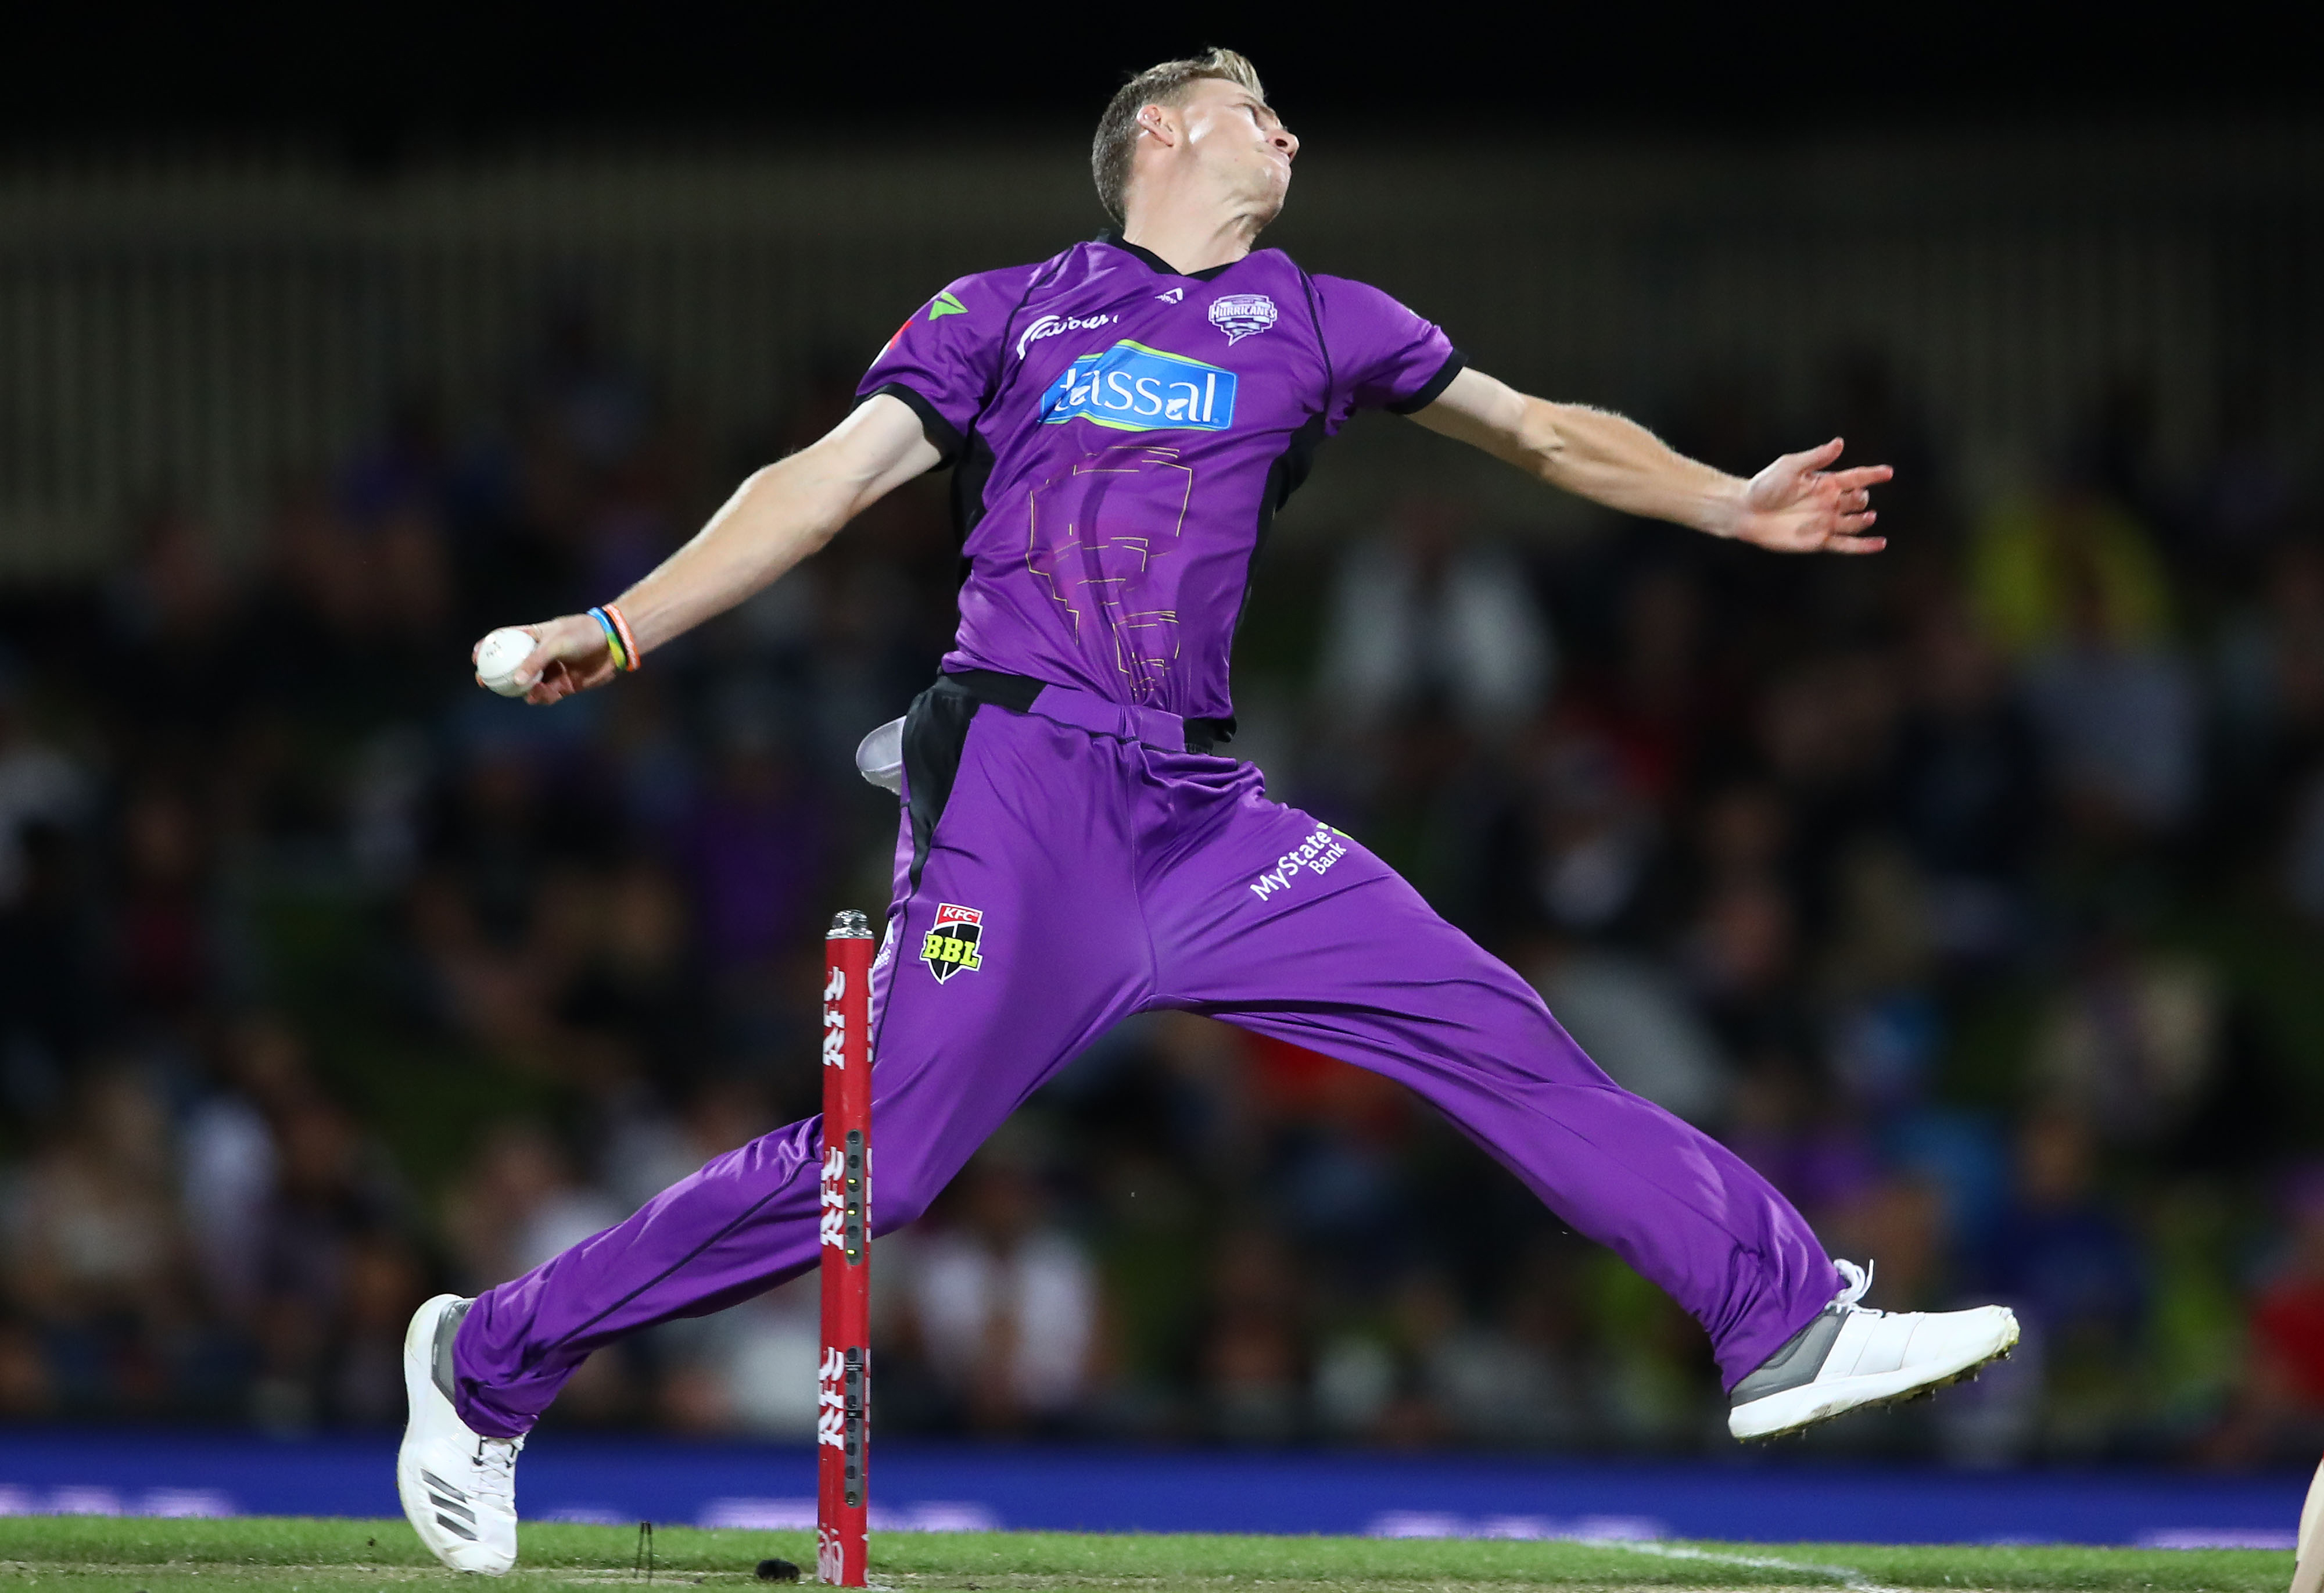 Meredith took 16 wickets in BBL|08 for the Hurricanes // Getty